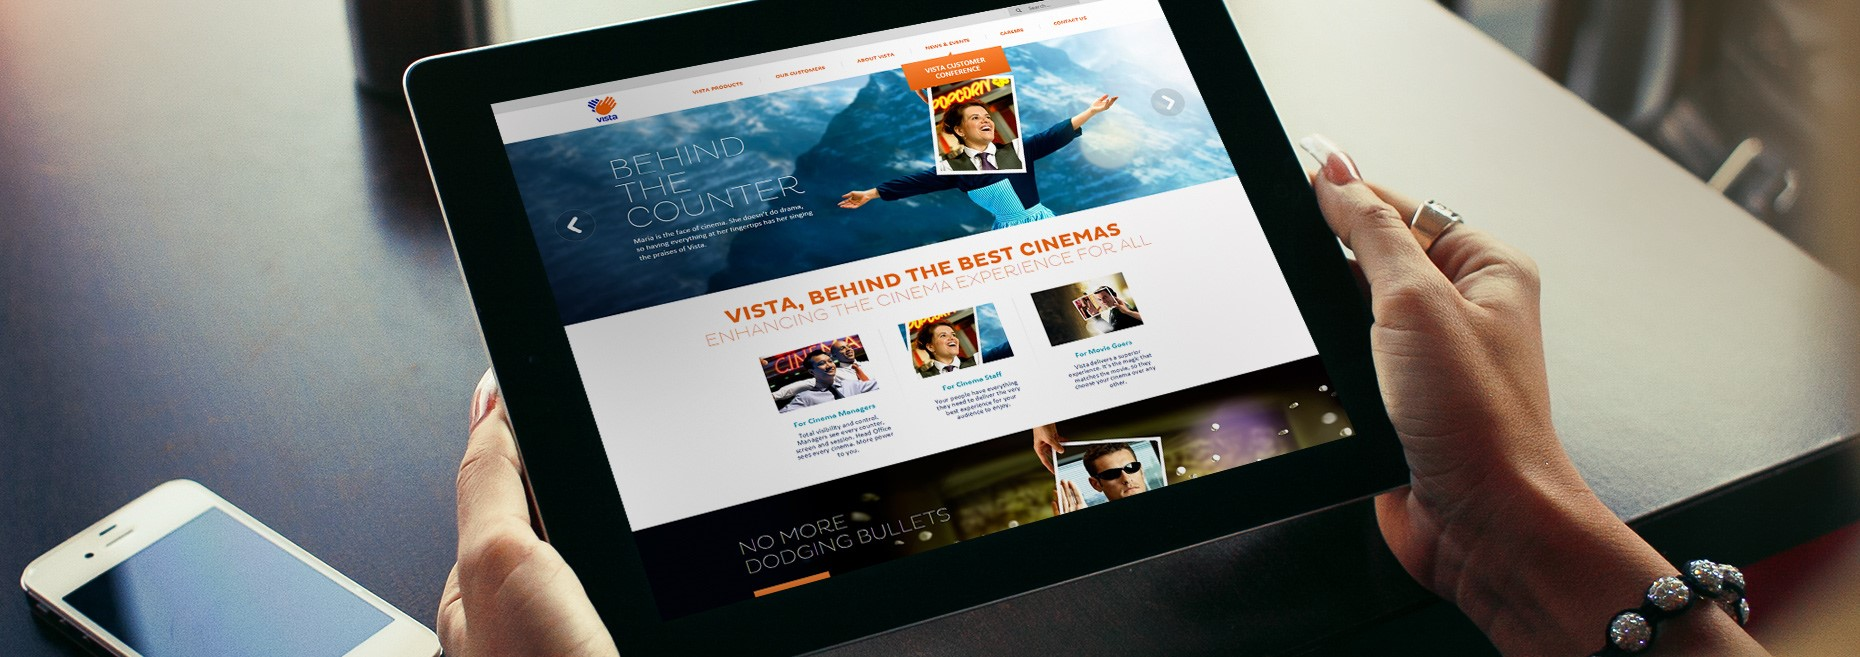 Vista Entertainment Solutions Homepage On A Tablet